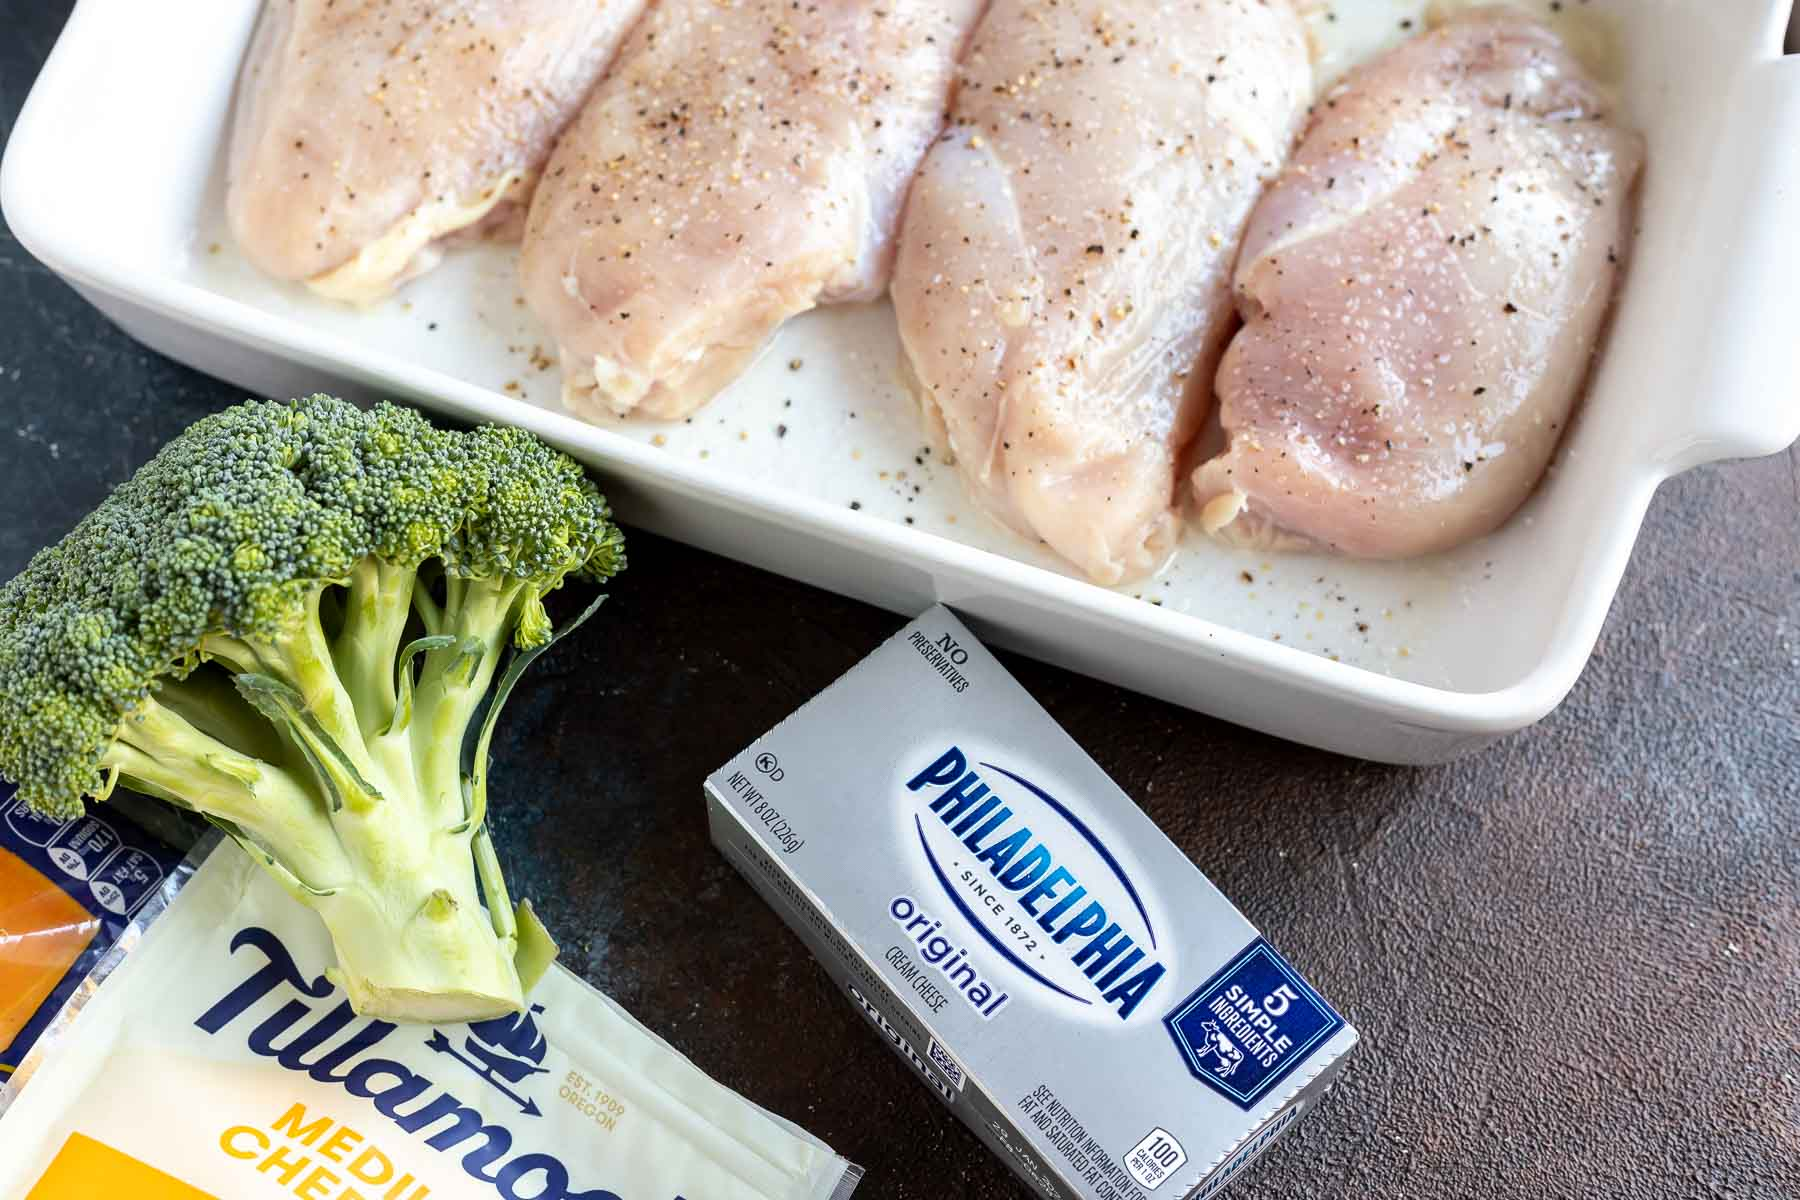 raw chicken, broccoli and package of cream cheese